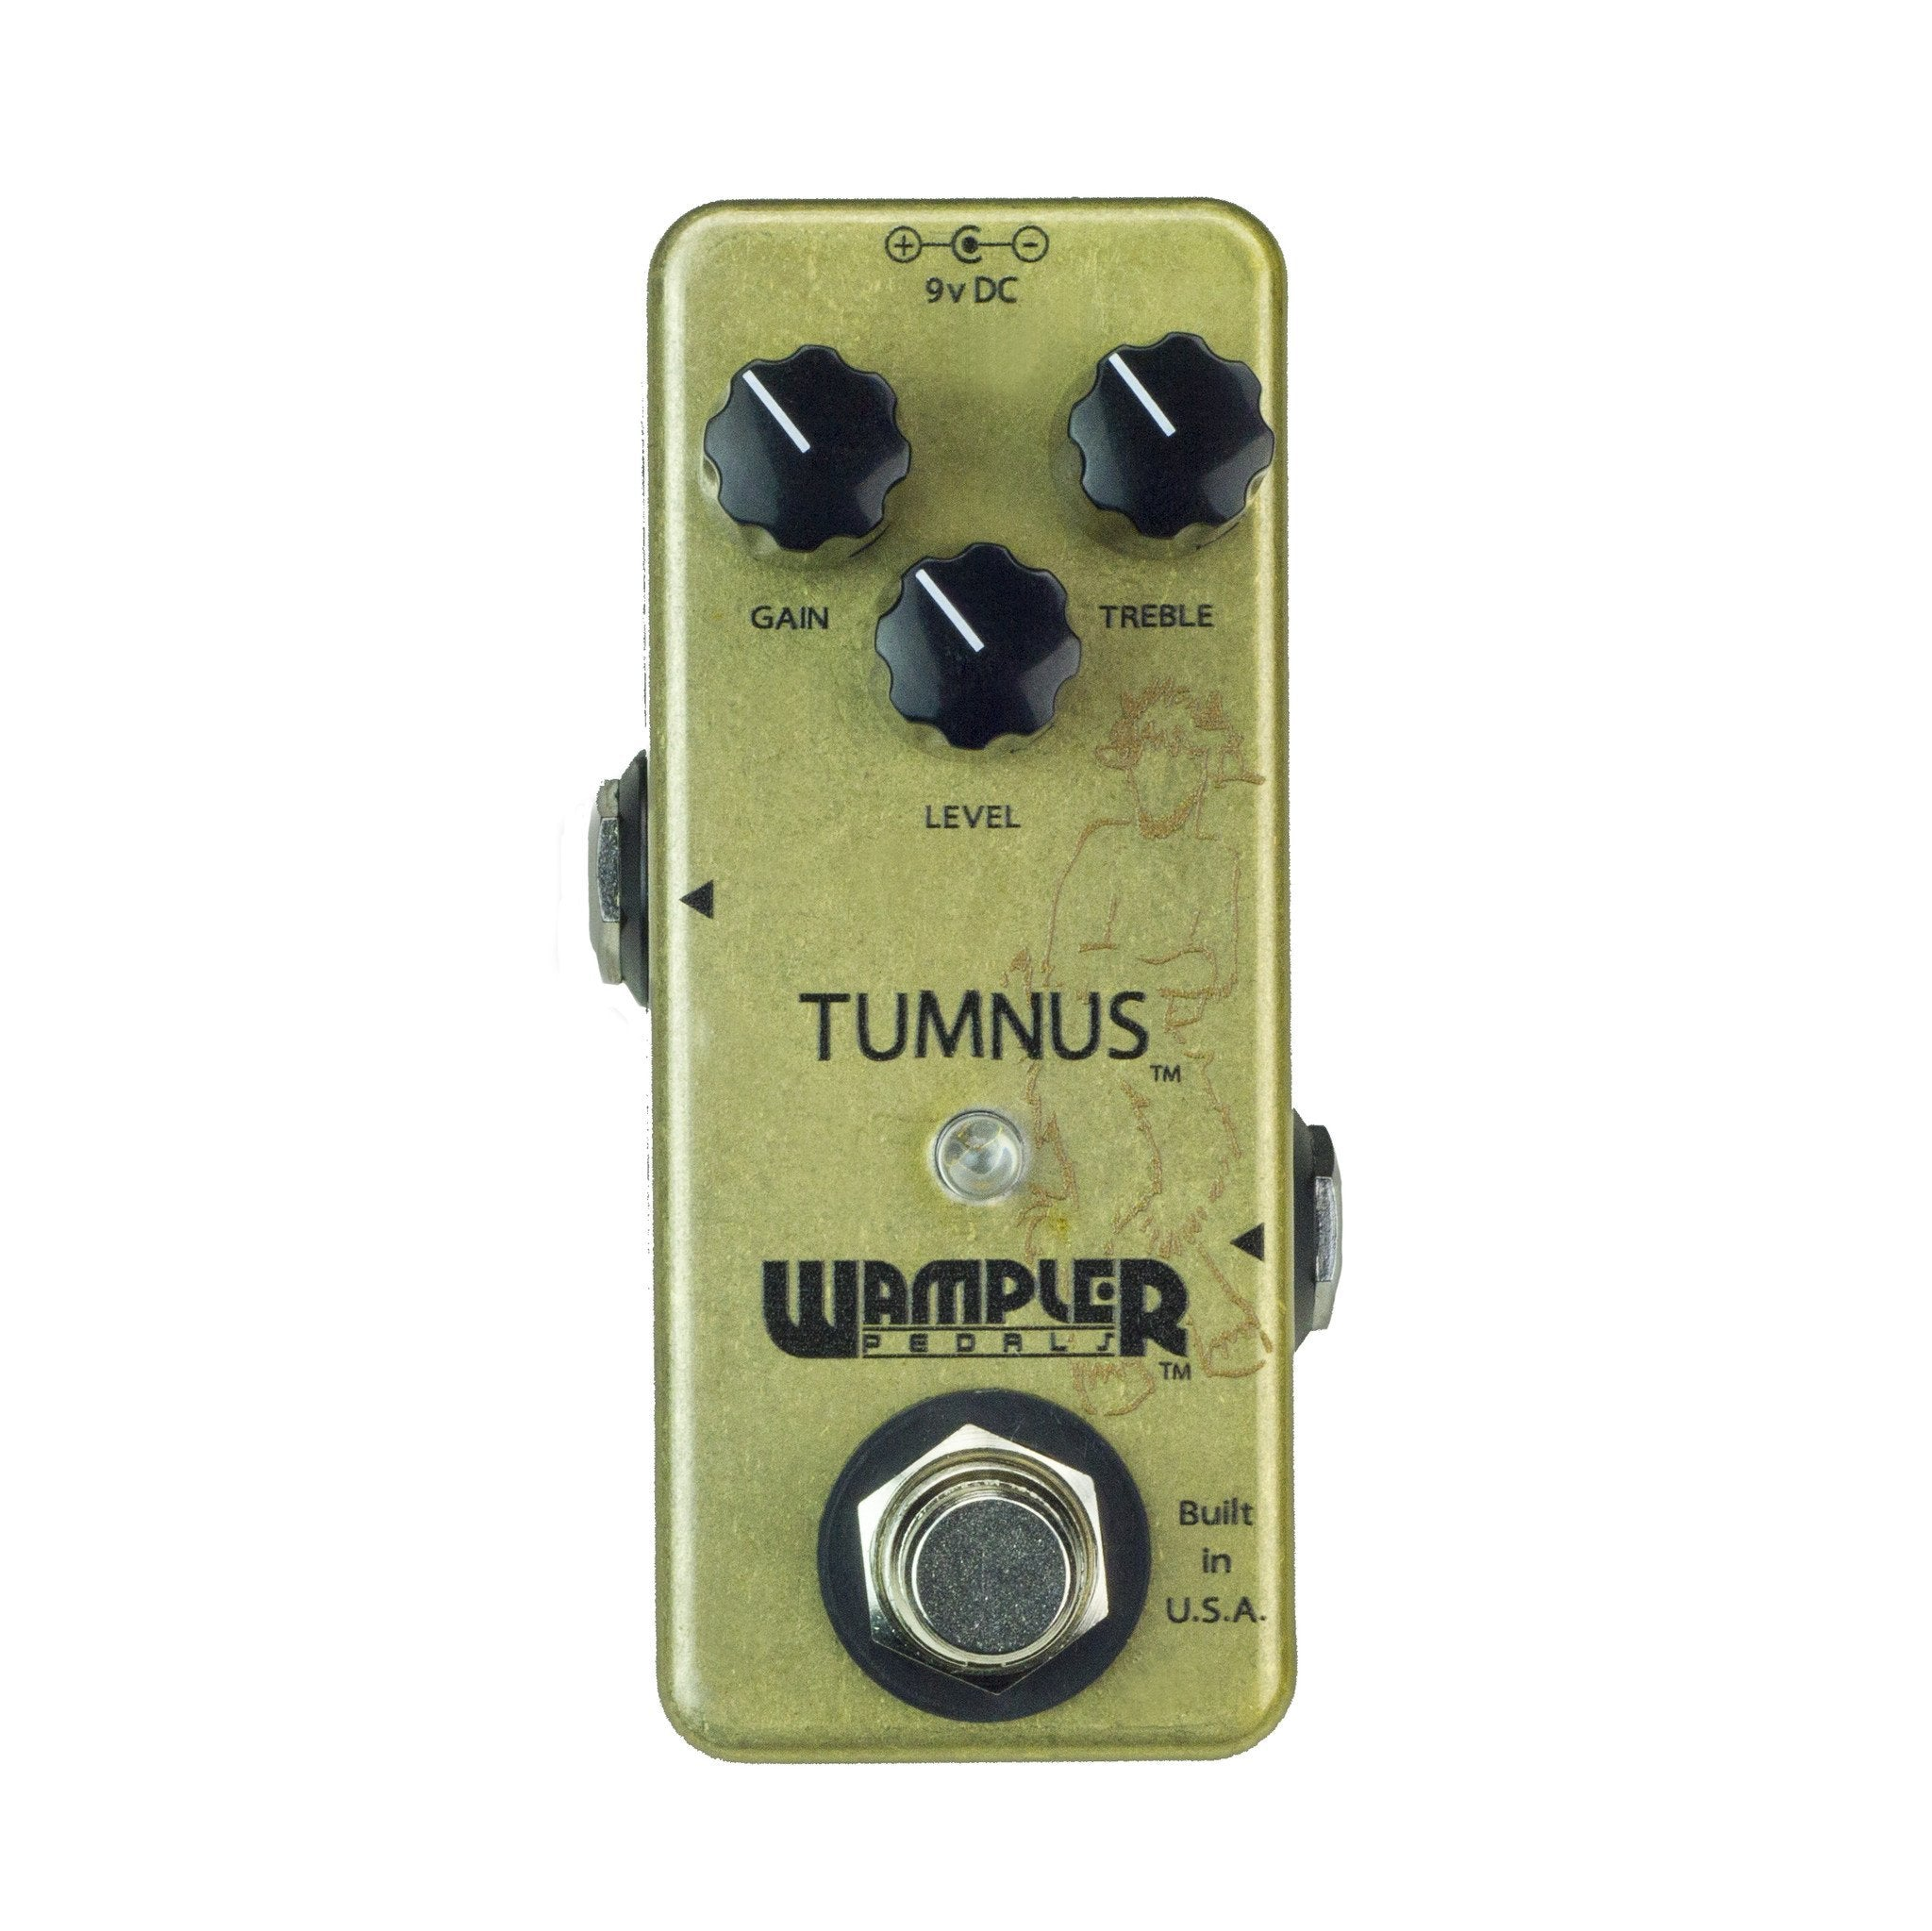 Wampler Pedals The Tumnus